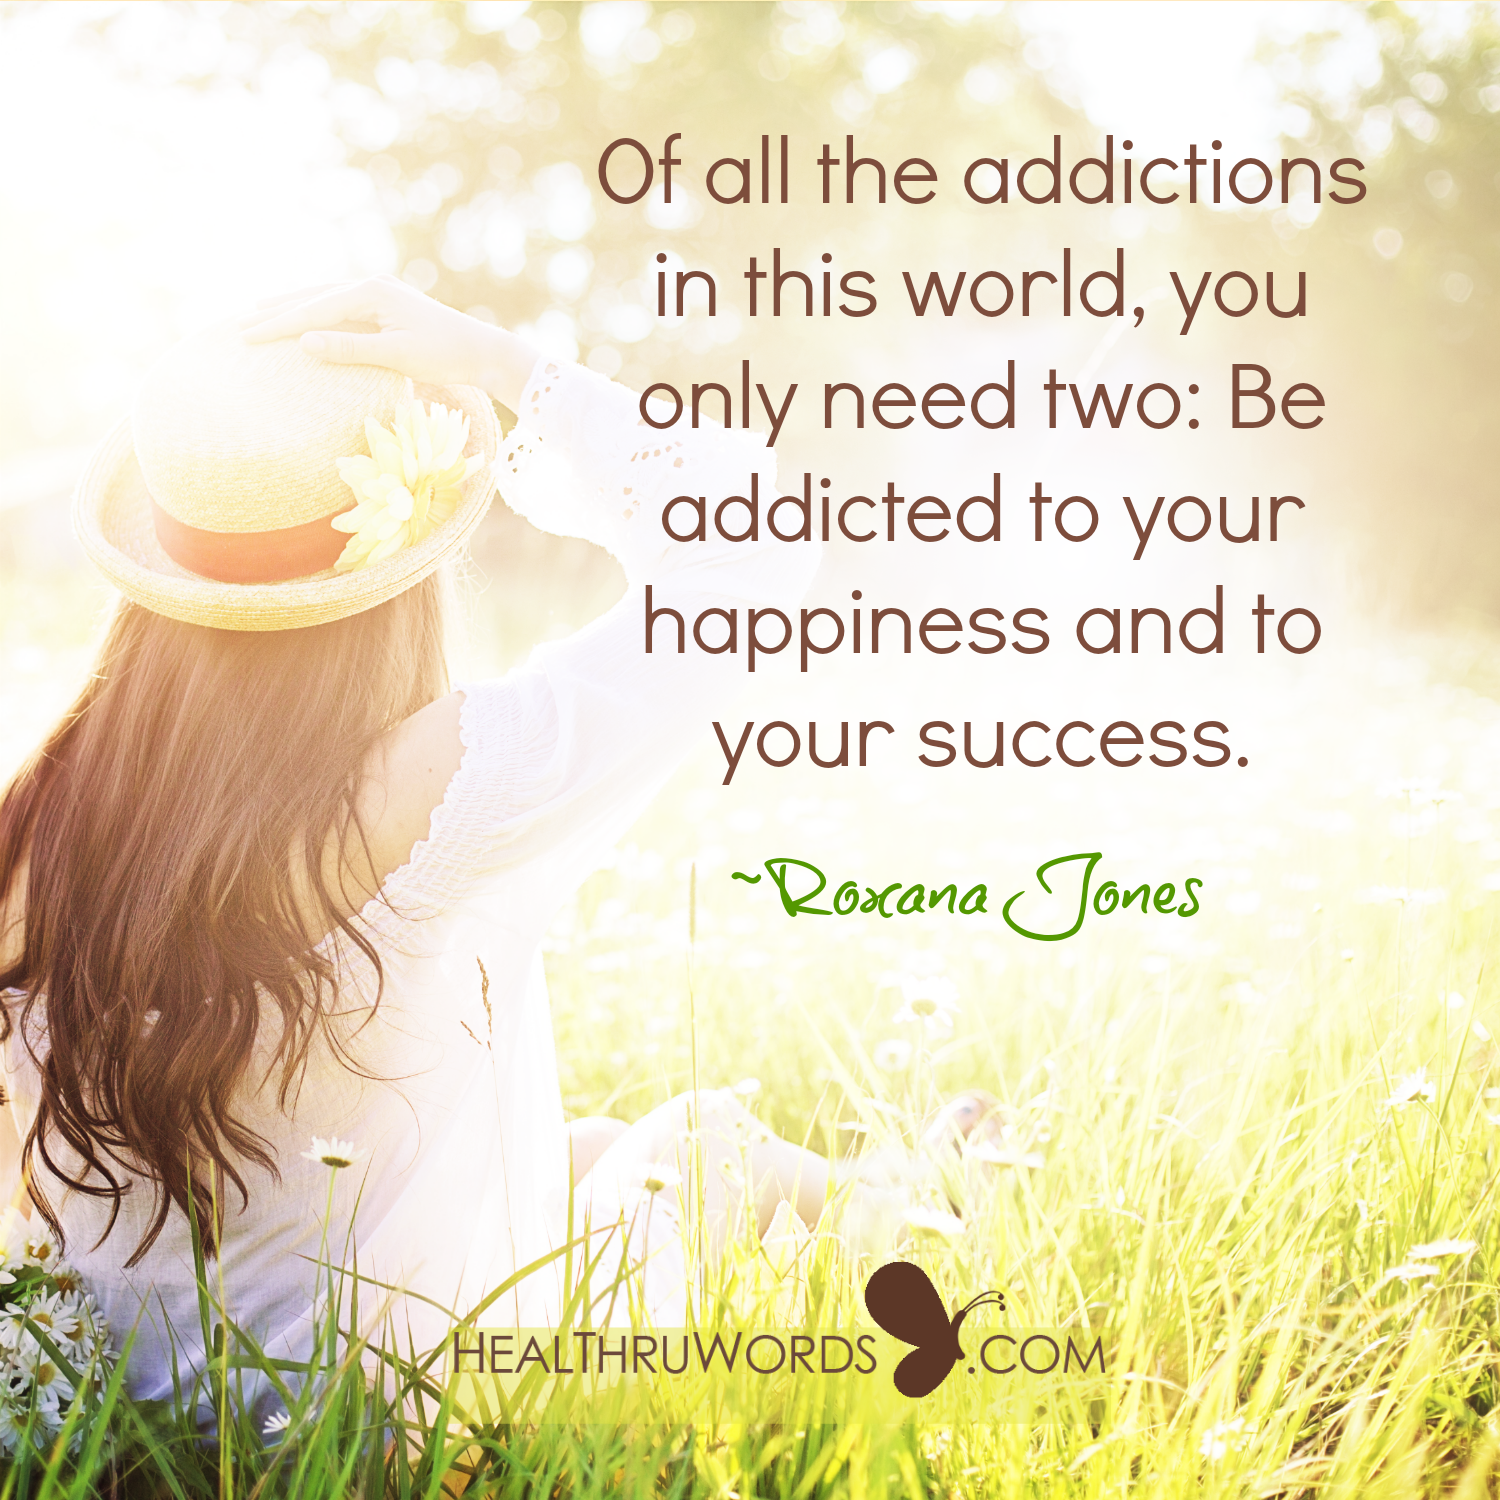 Inspirational Image: Positive Addictions